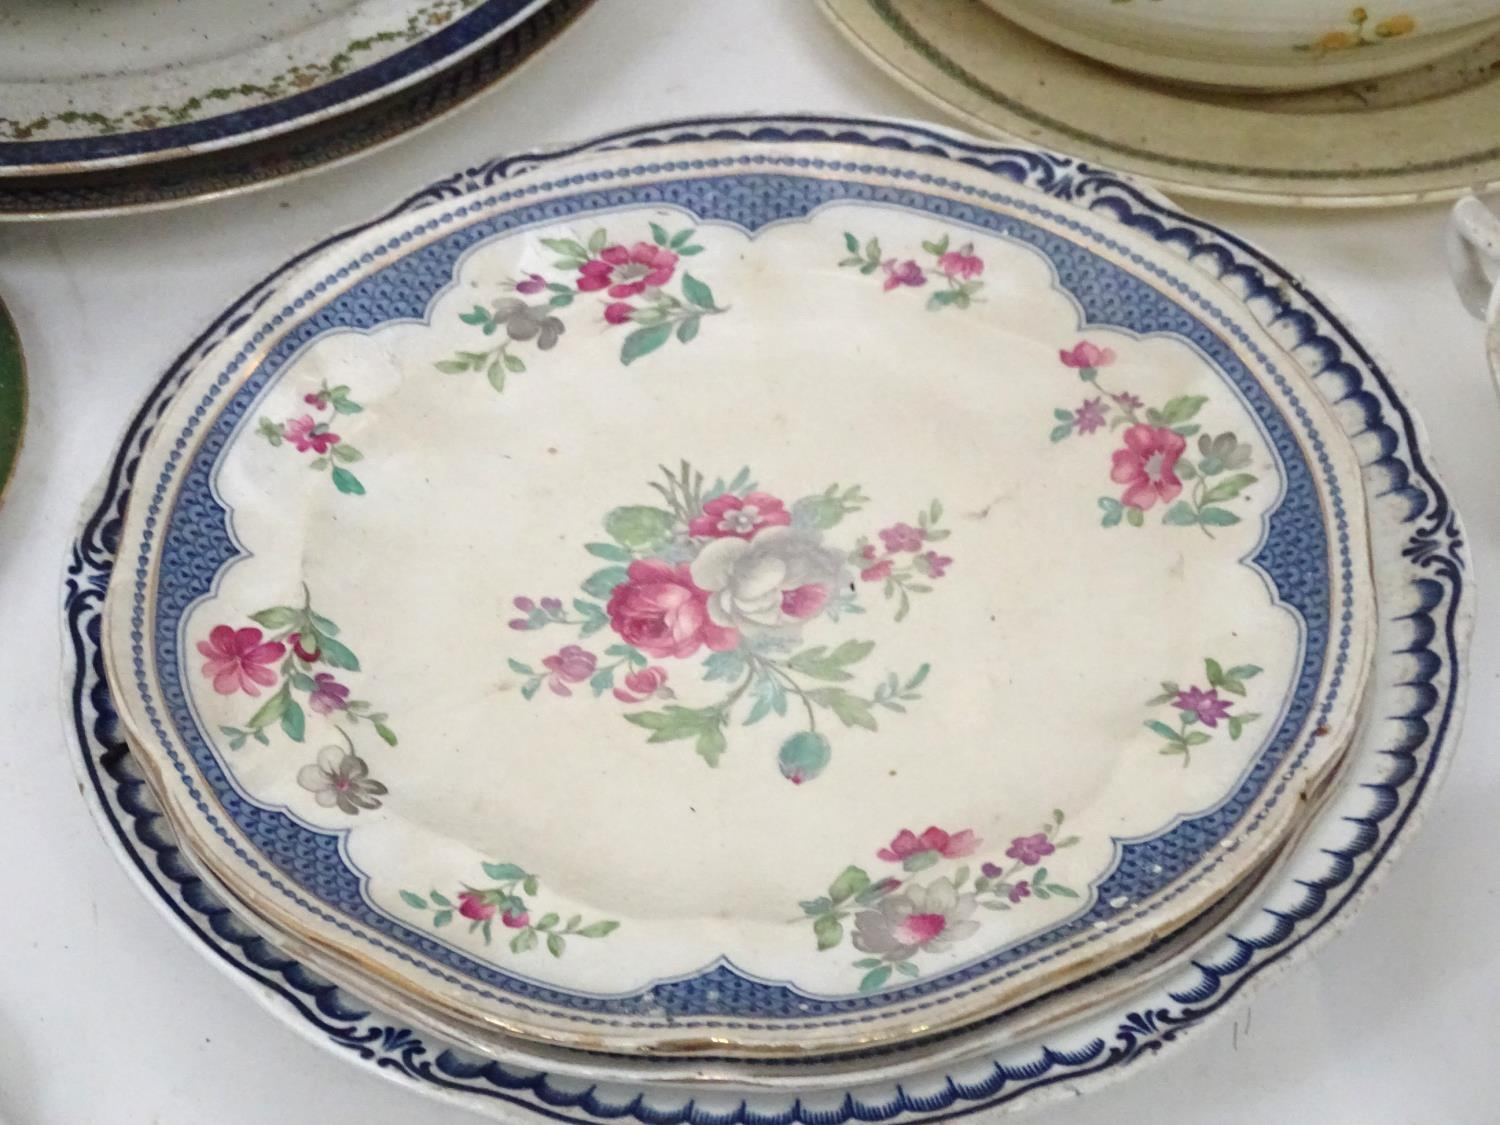 A quantity of assorted Booths china patterns to include Old Staffordshire, Flowerpiece, - Image 10 of 14